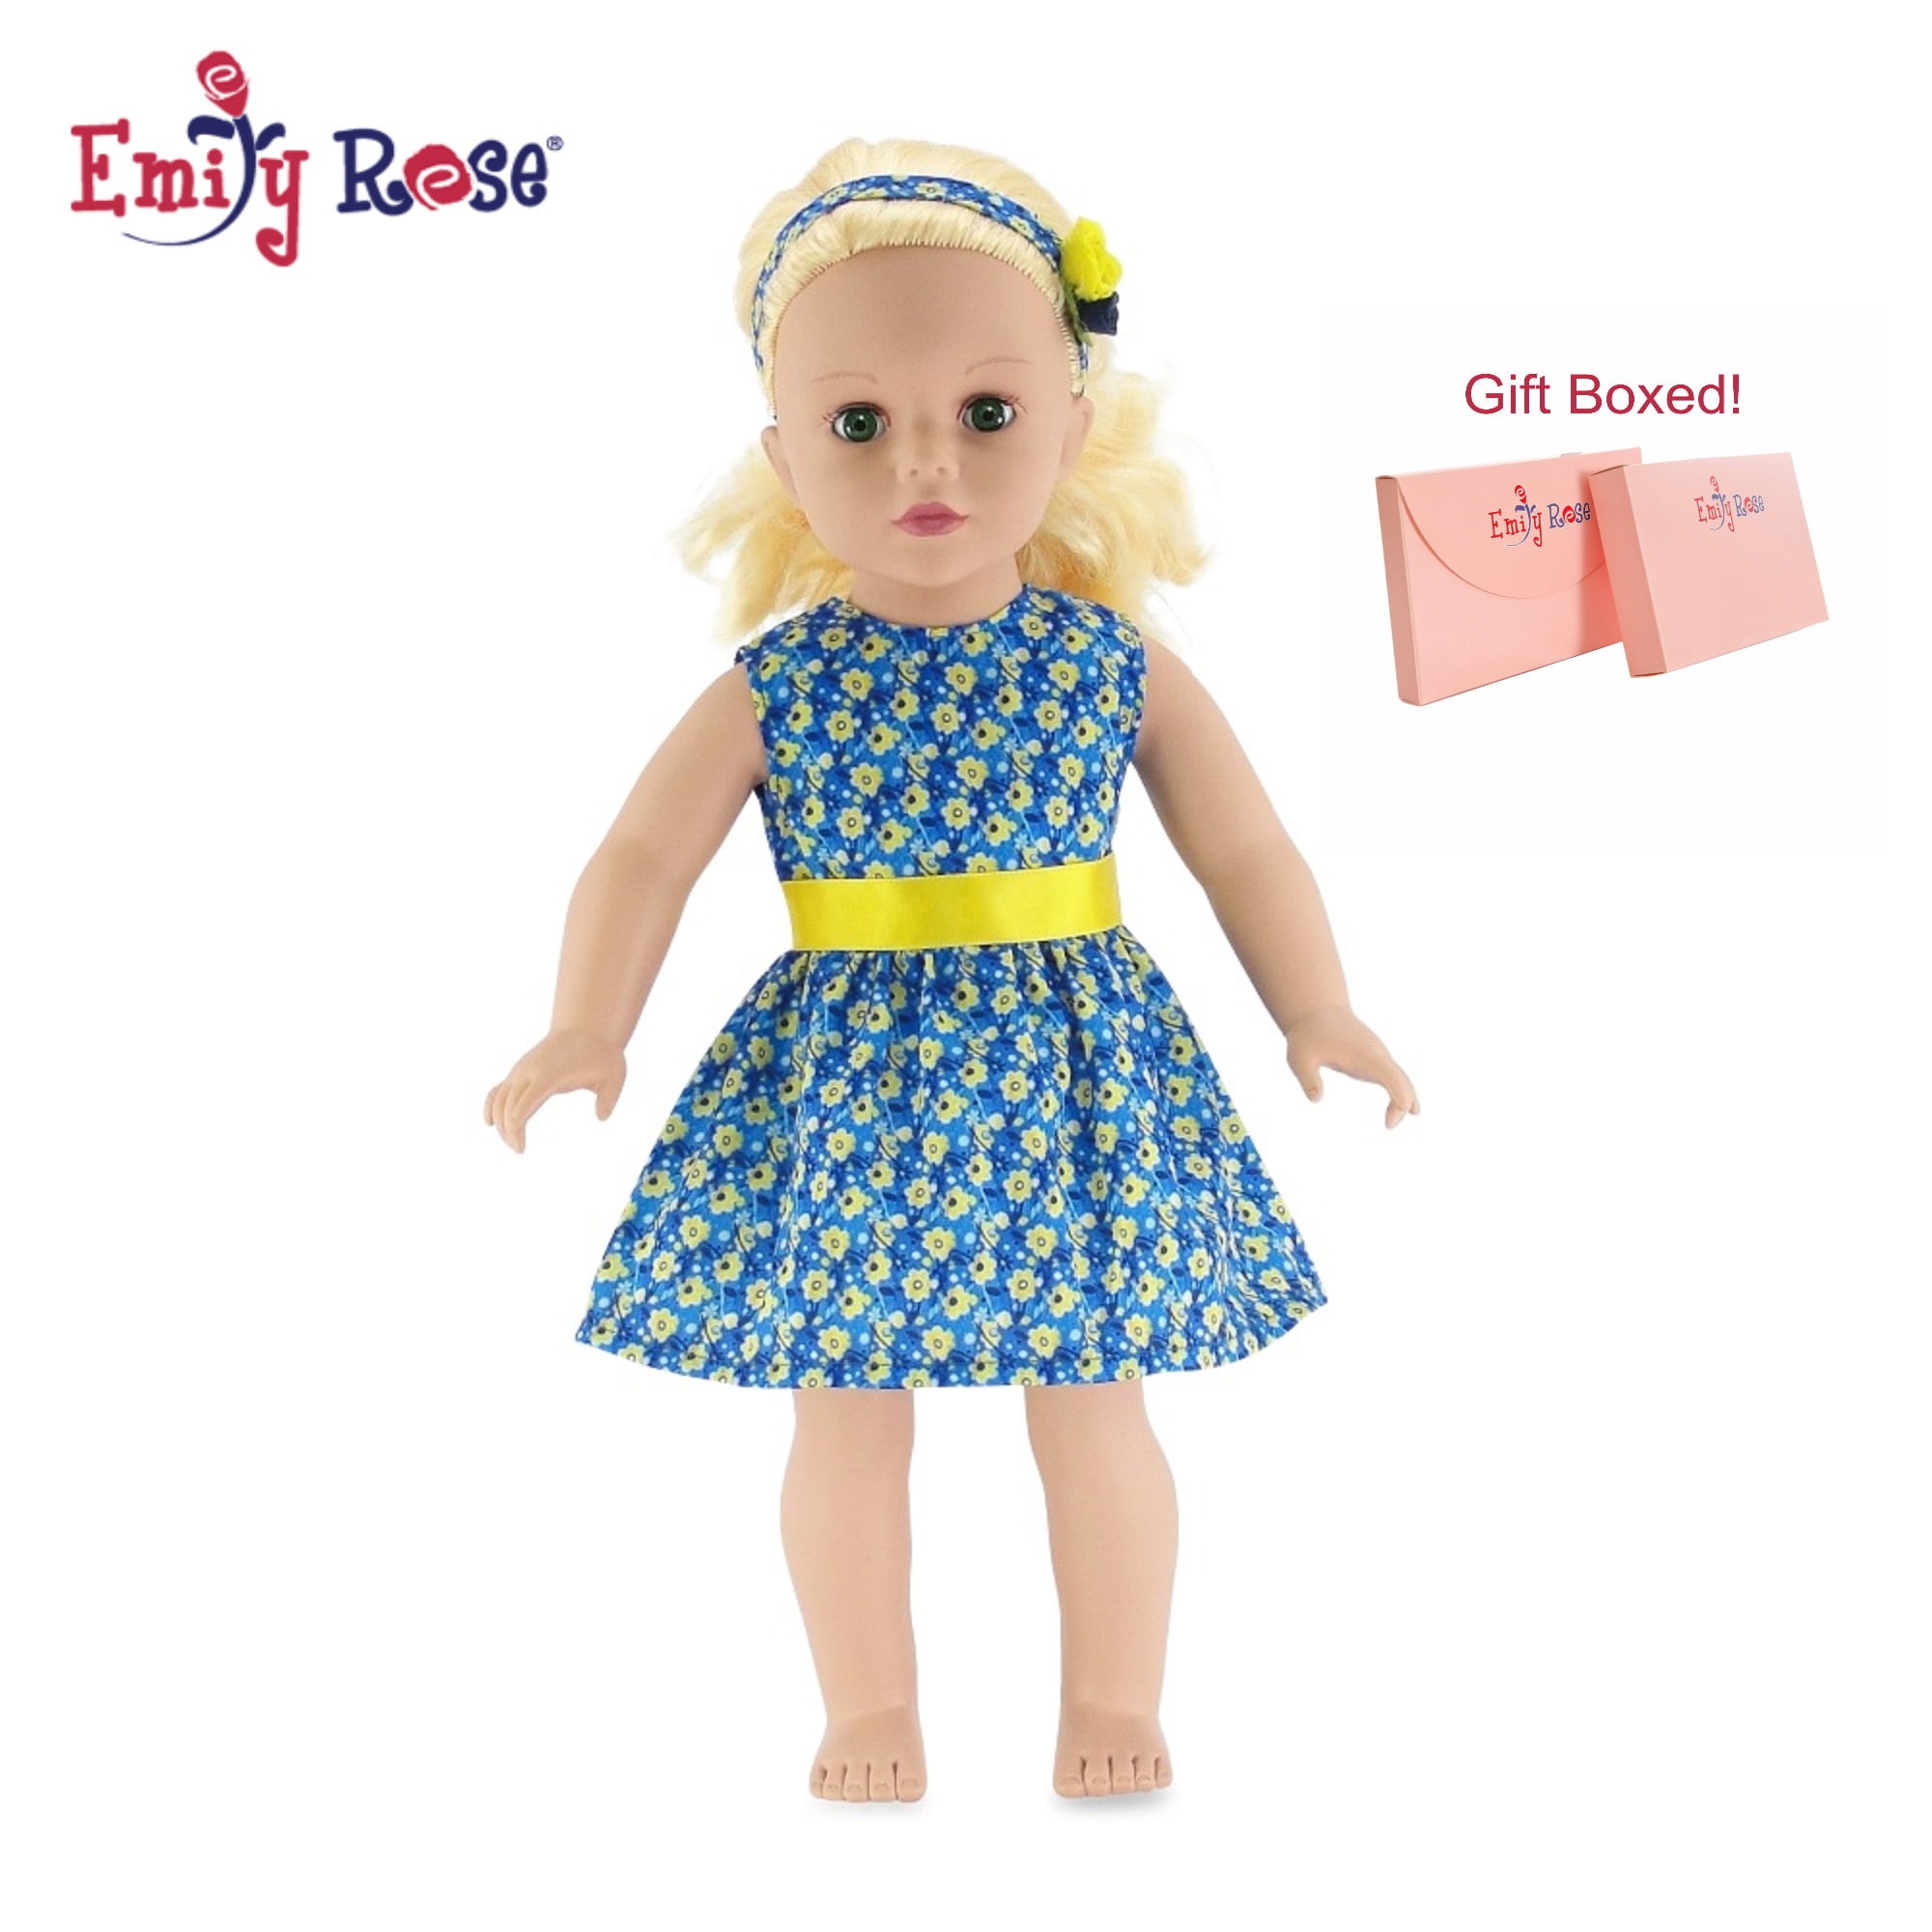 Green /& Yellow Handbag Fit For 18/'/' American Girl Doll Clothes Gift